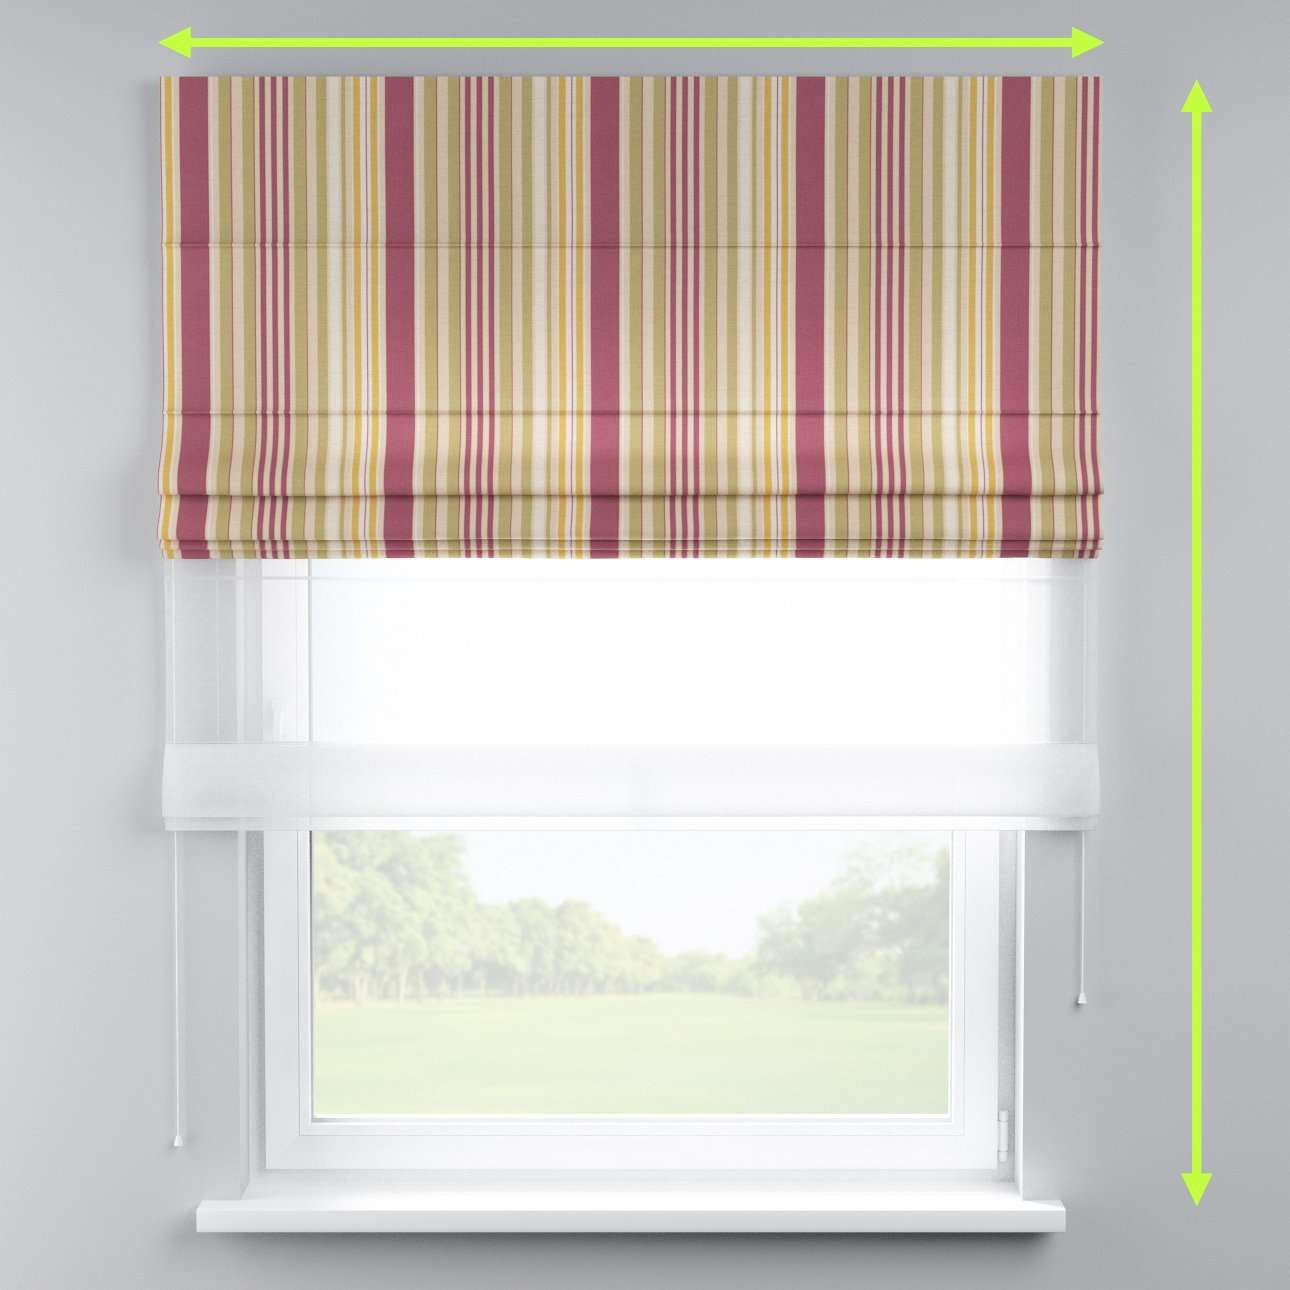 Voile and fabric roman blind (DUO II) in collection Londres, fabric: 122-09